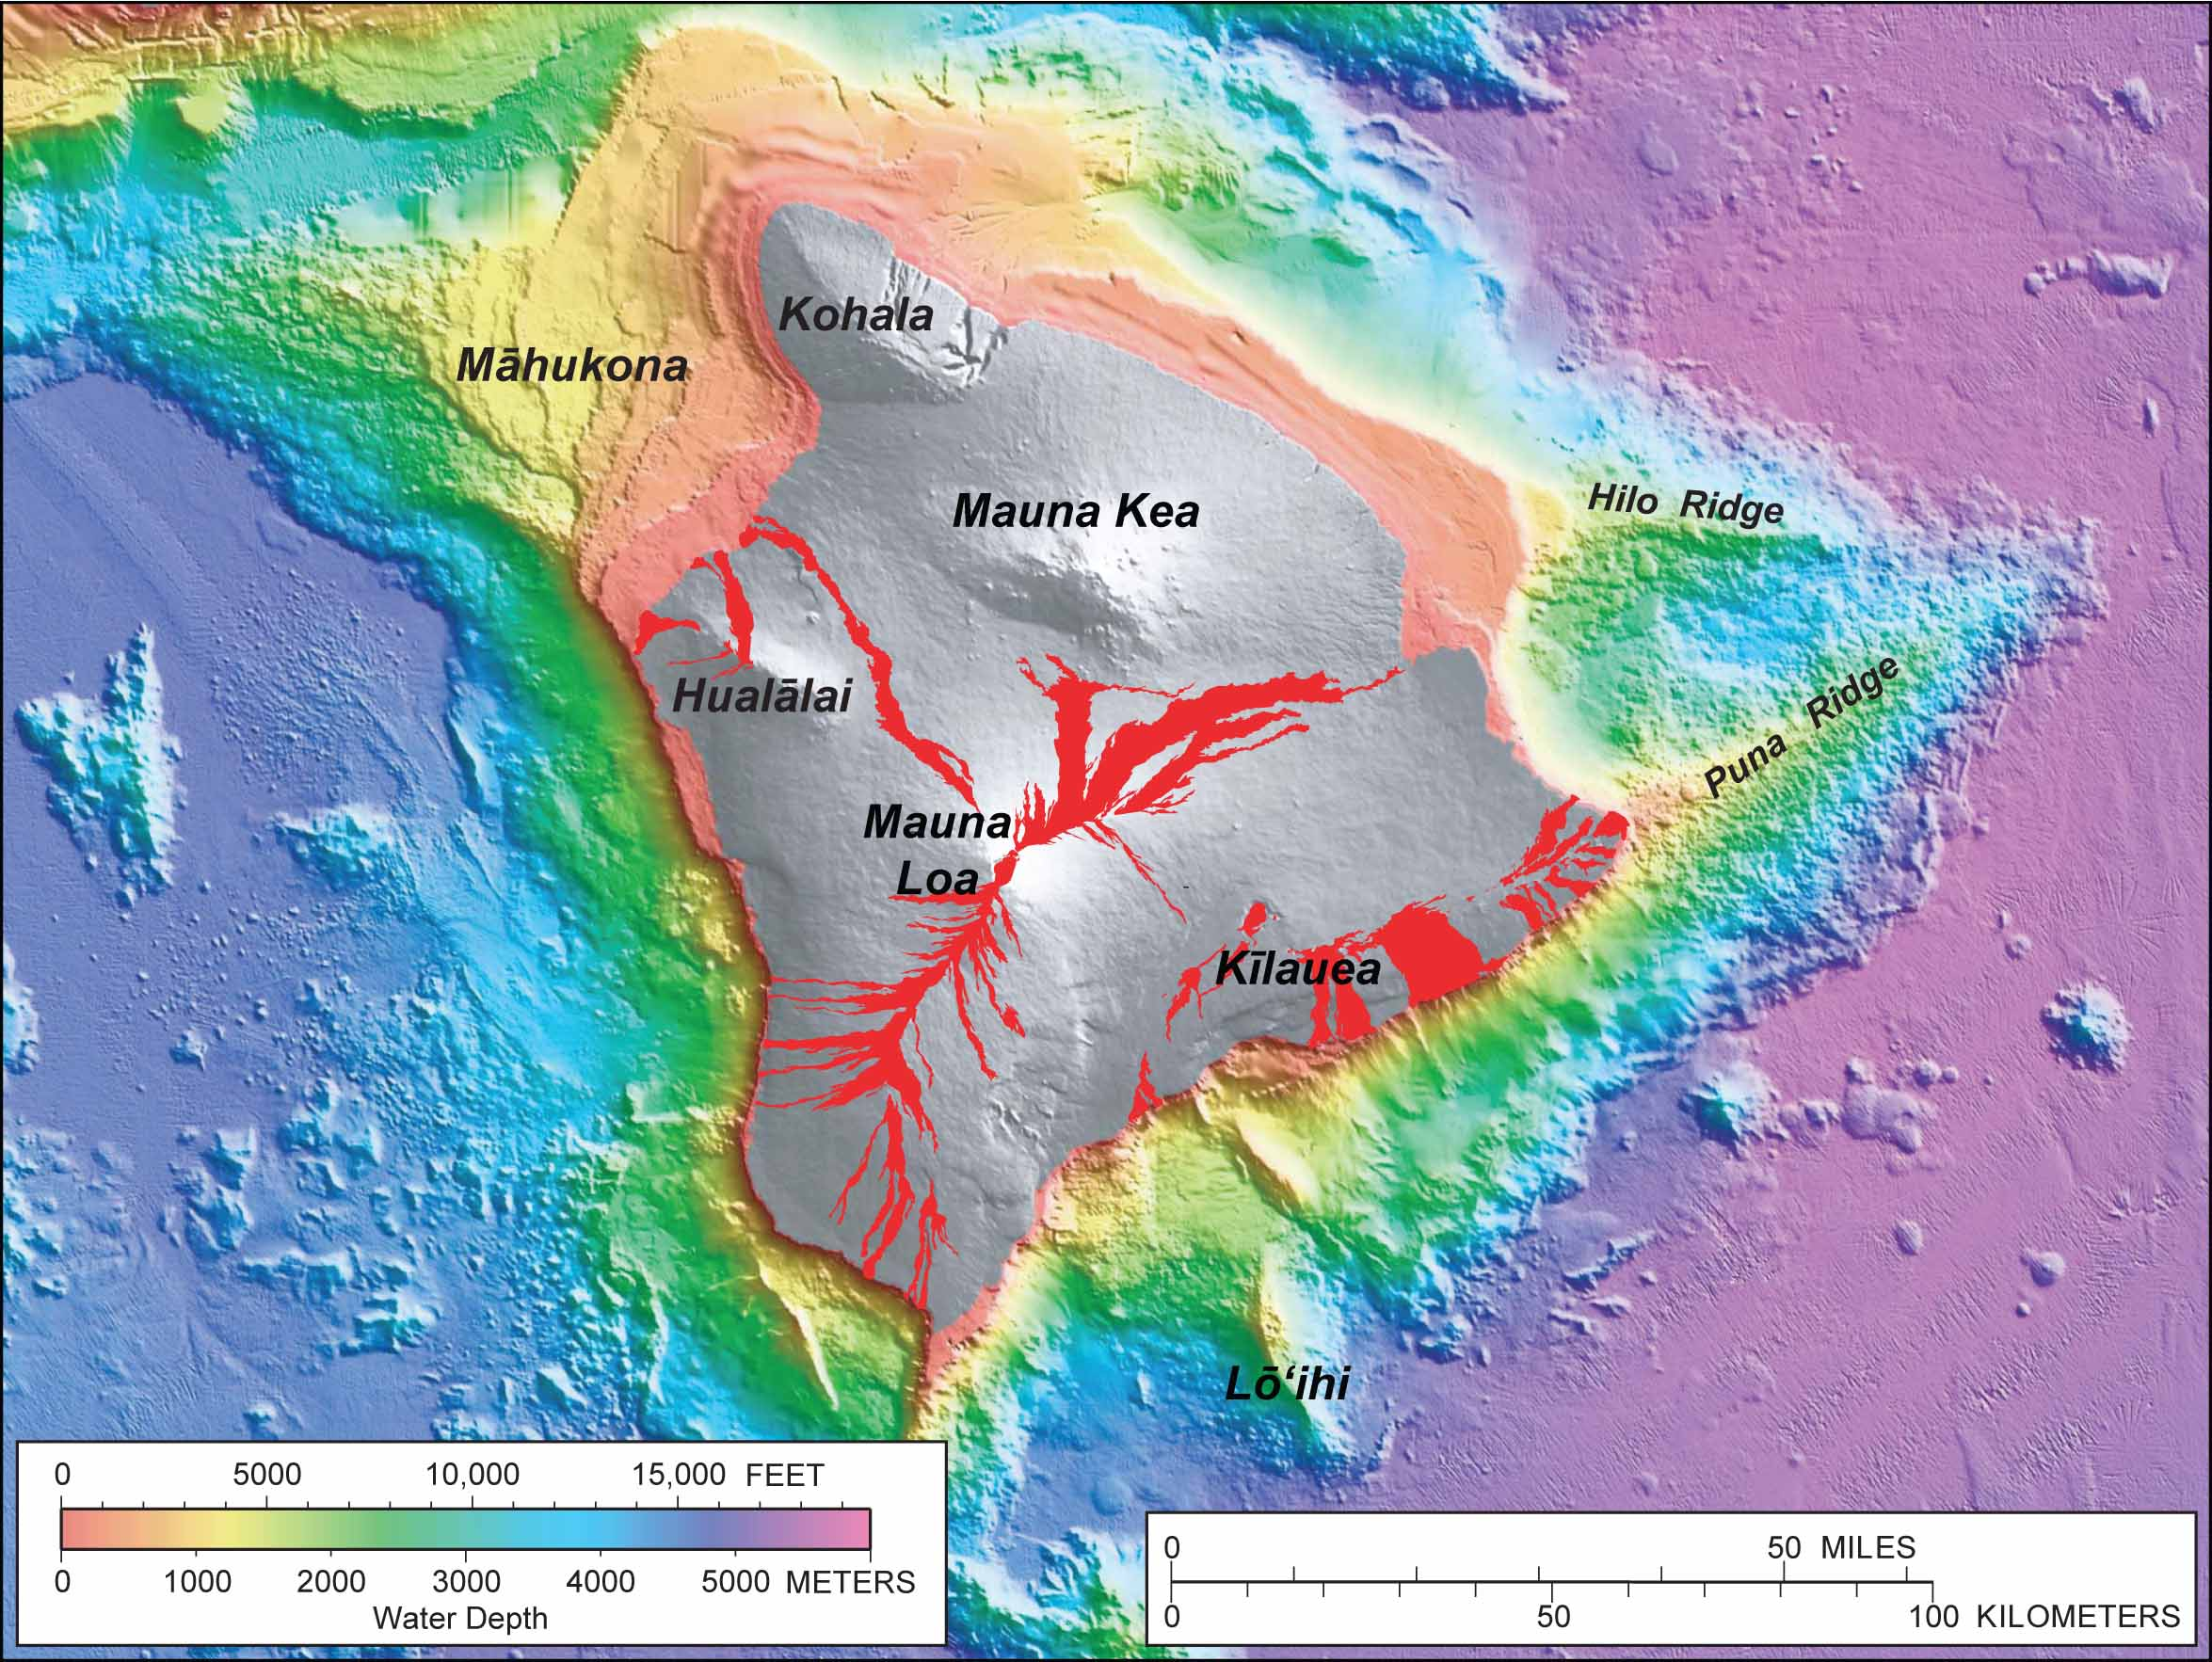 Researchers Studying More of Loihis Secrets  Big Island Now